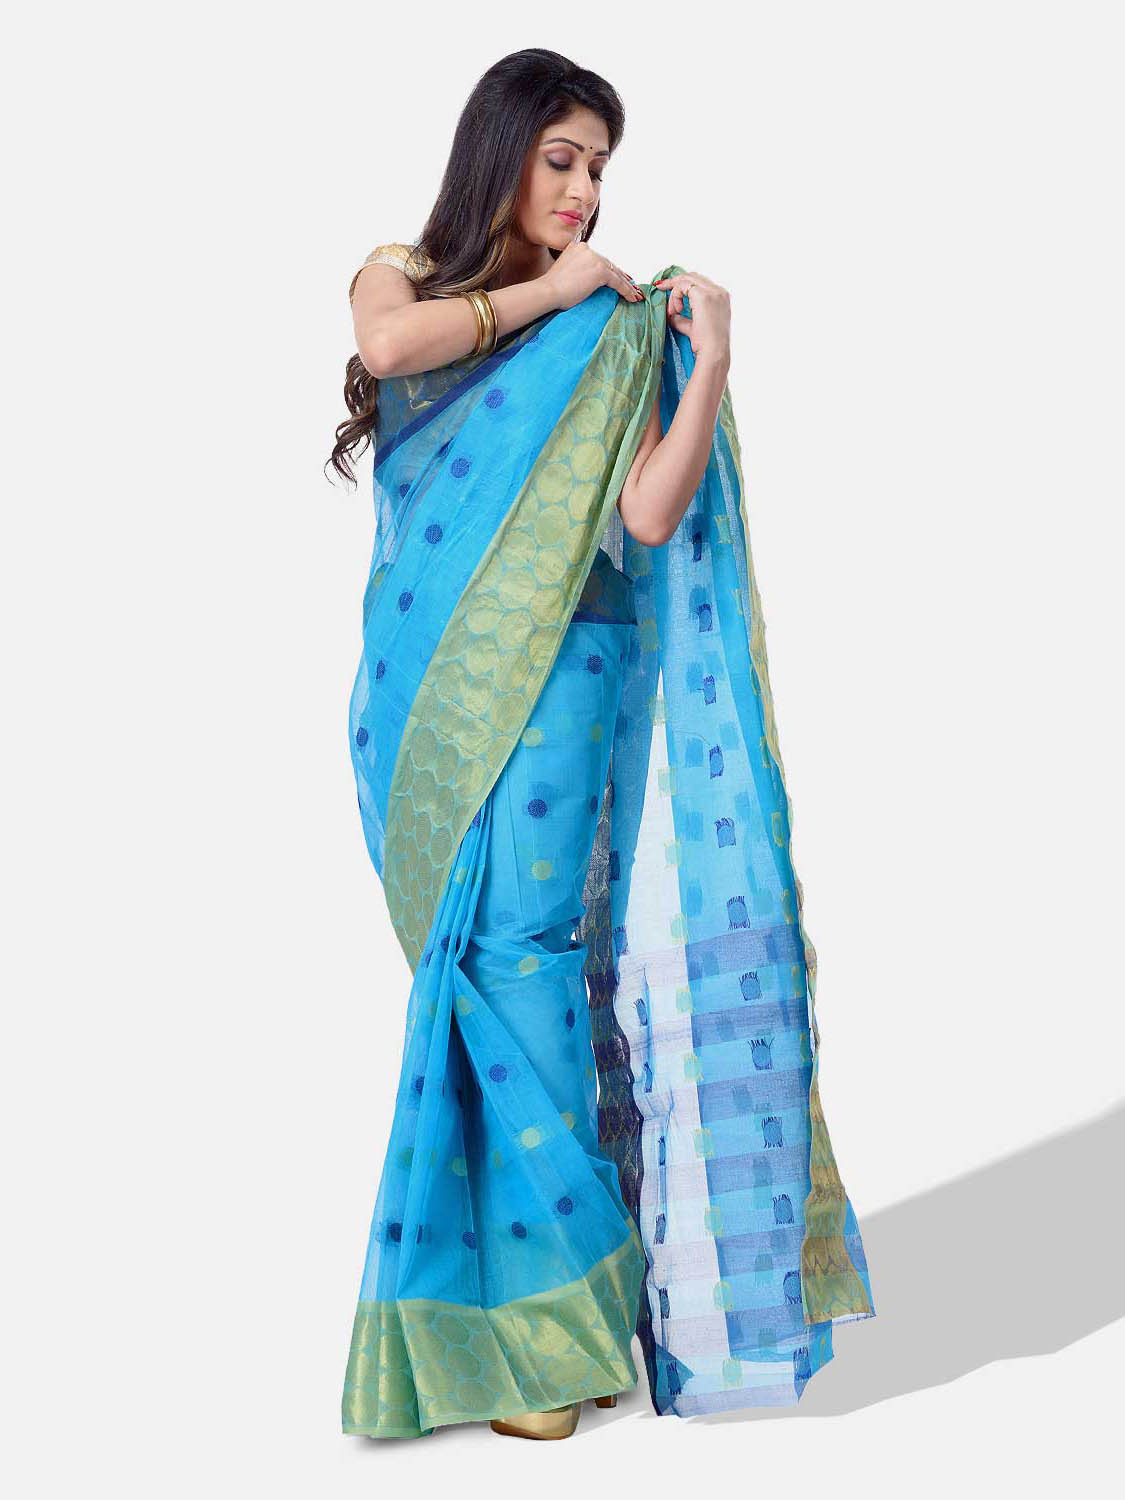 Women Ganga Jamuna Bengal Handloom Cotton Tant Saree Without Blouse Piece (DBGANGAJ4_blue_golden)